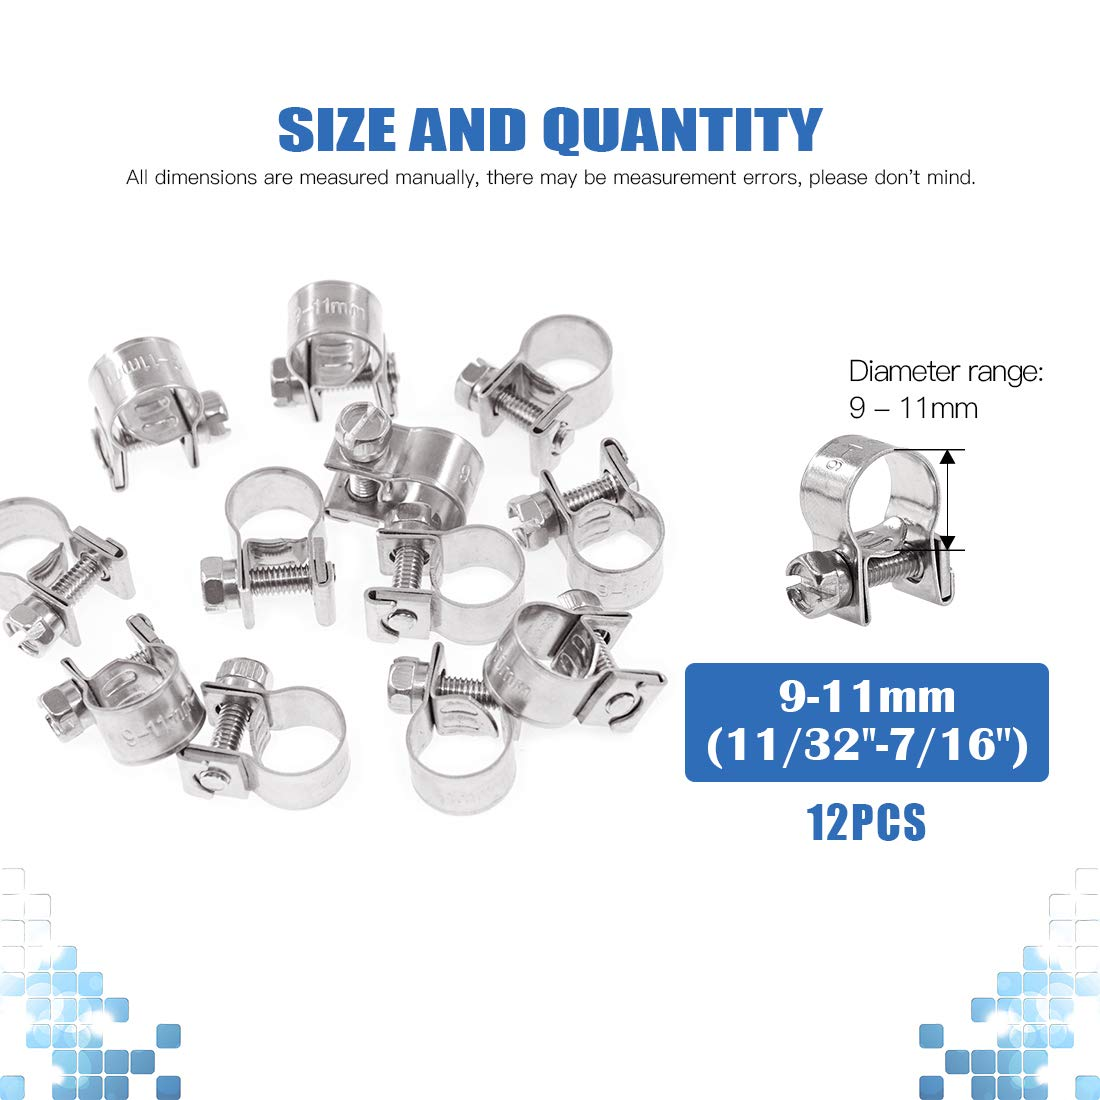 19//32-11//16 Dia Glarks 12Pack 15-17mm Stainless Steel Mini Fuel Injection Hose Clamps Adjustable Pipe Hose Clip Tube Clamps Set